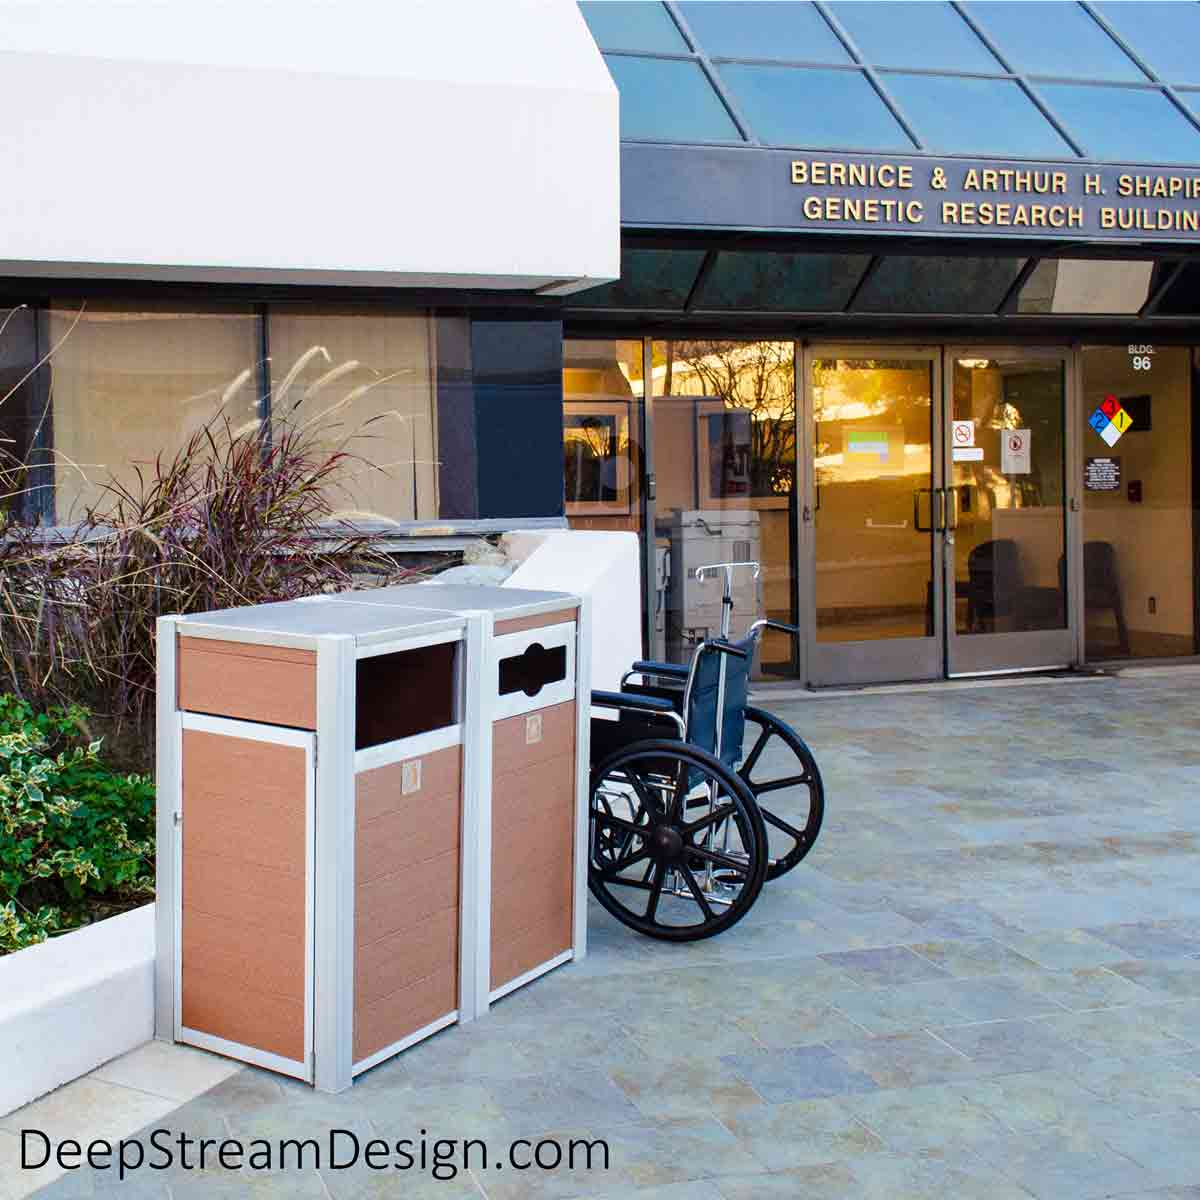 On the hospital grounds of a world-class research hospital, a high-volume 33-gallon Oahu Modern Commercial Recycling Receptacle, with a no-touch fixed comingled front flap, serves alongside a no-touch open front Modern Commercial Trash Bin. Both are crafted with DeepStream's trademark marine-anodized aluminum legs. Tropical Hardwood recycled plastic lumber plank panels, 316 stainless steel lids and hinges, ergonomic side doors for bag changes, and marine aluminum fixed flap.